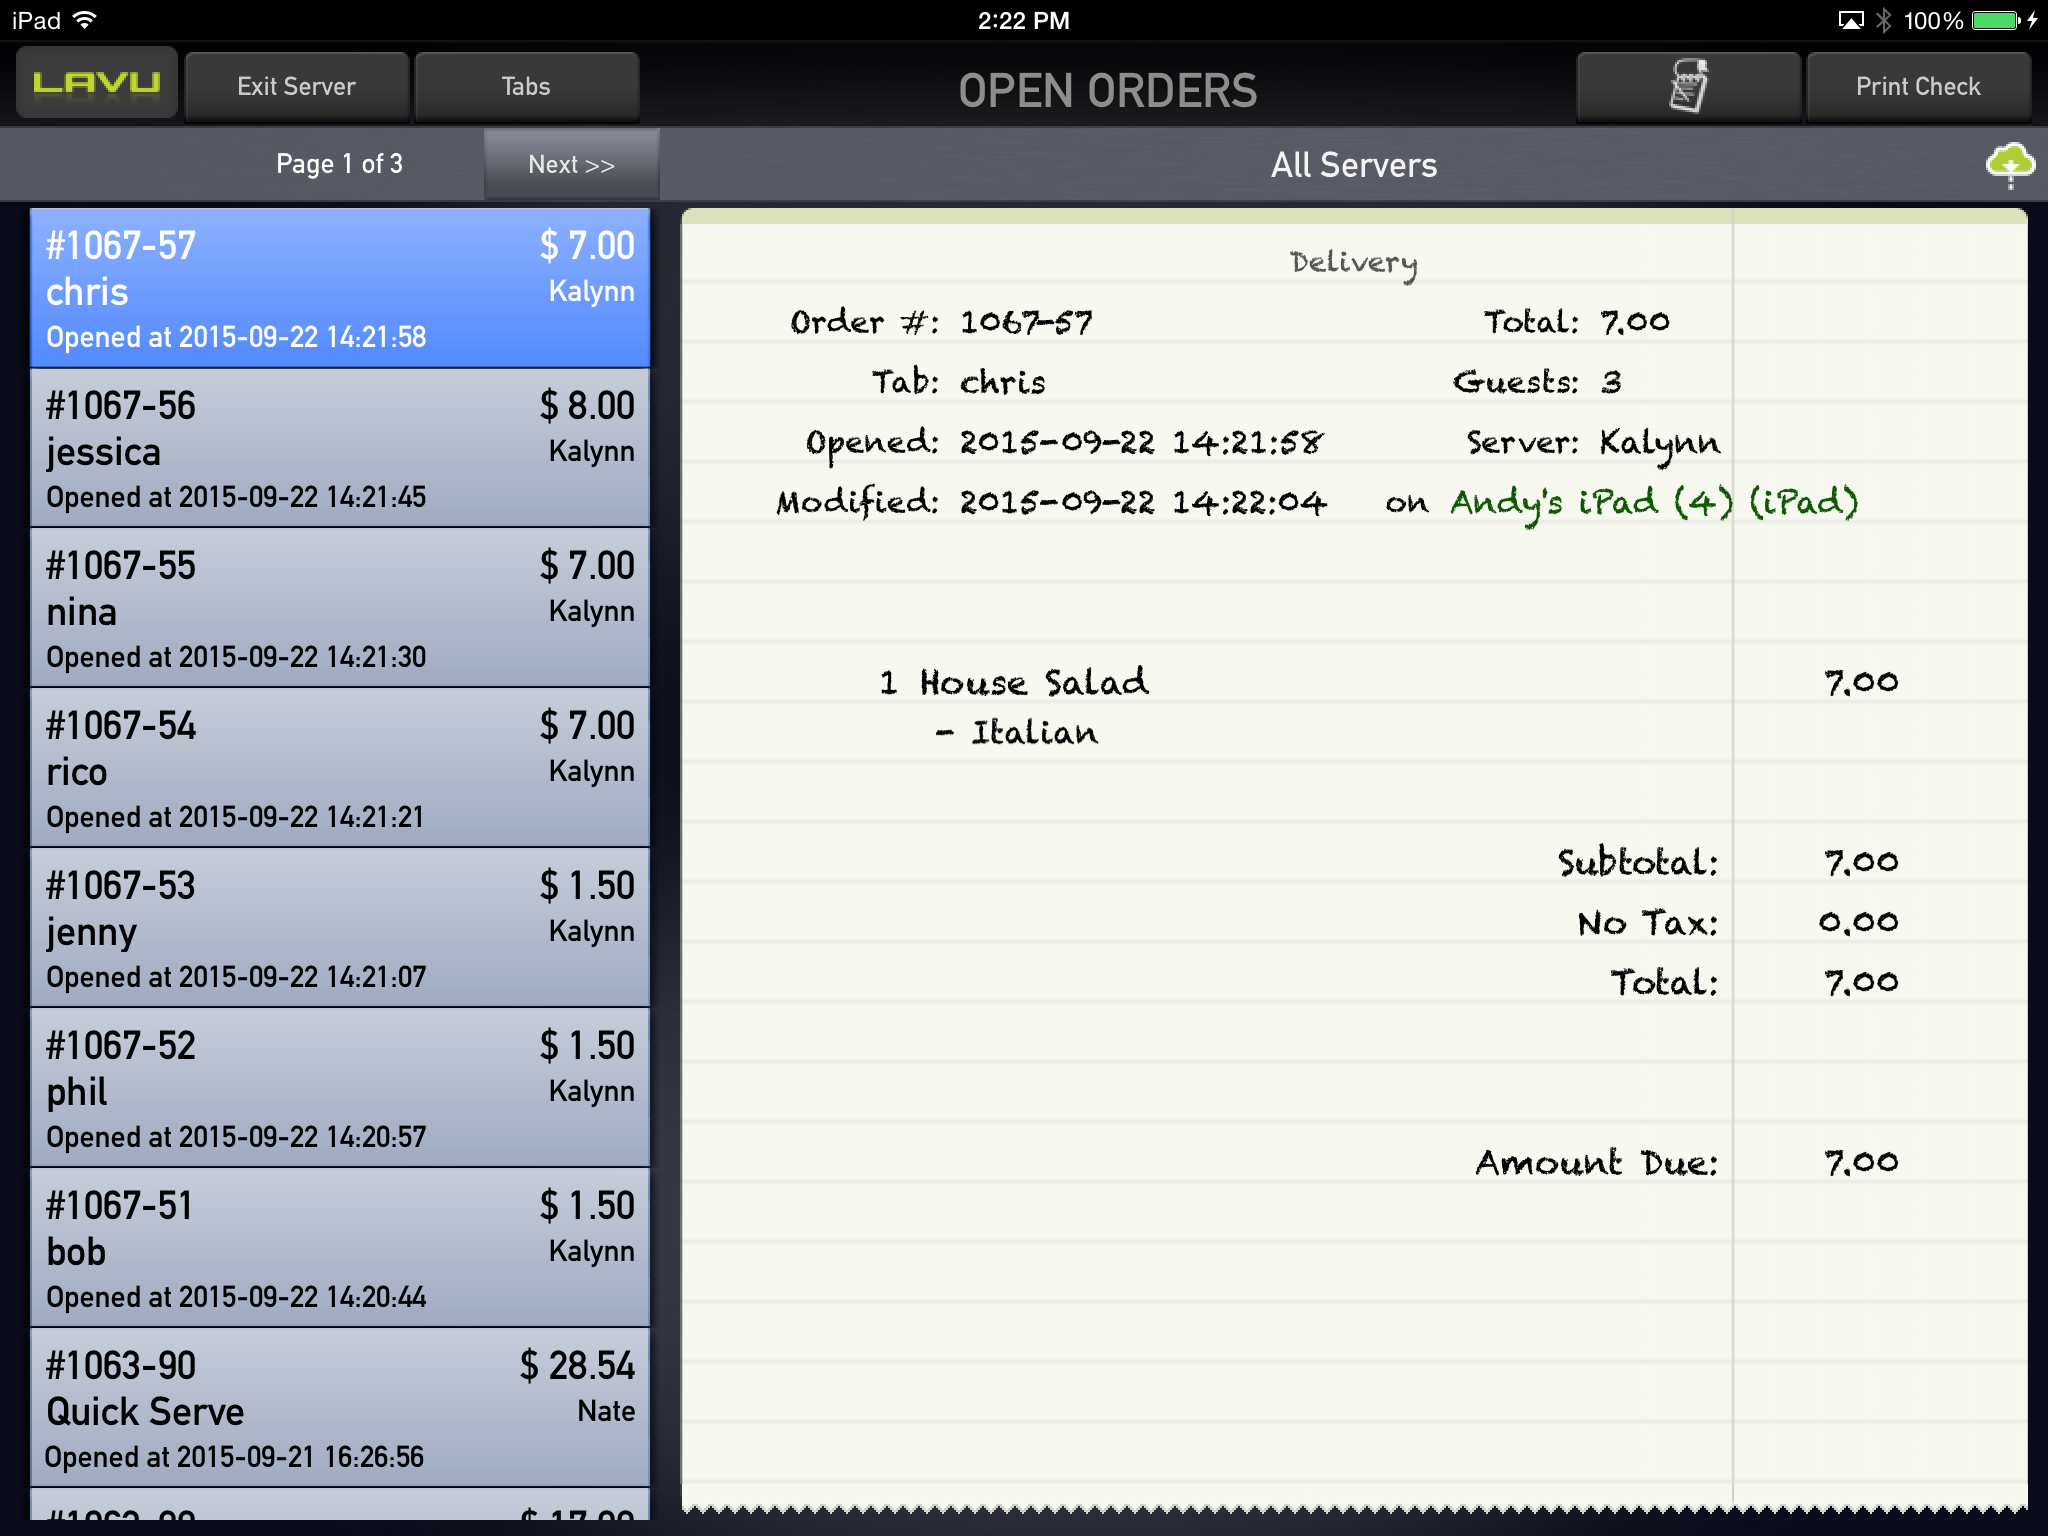 Lavu POS Software - Scroll through open orders.